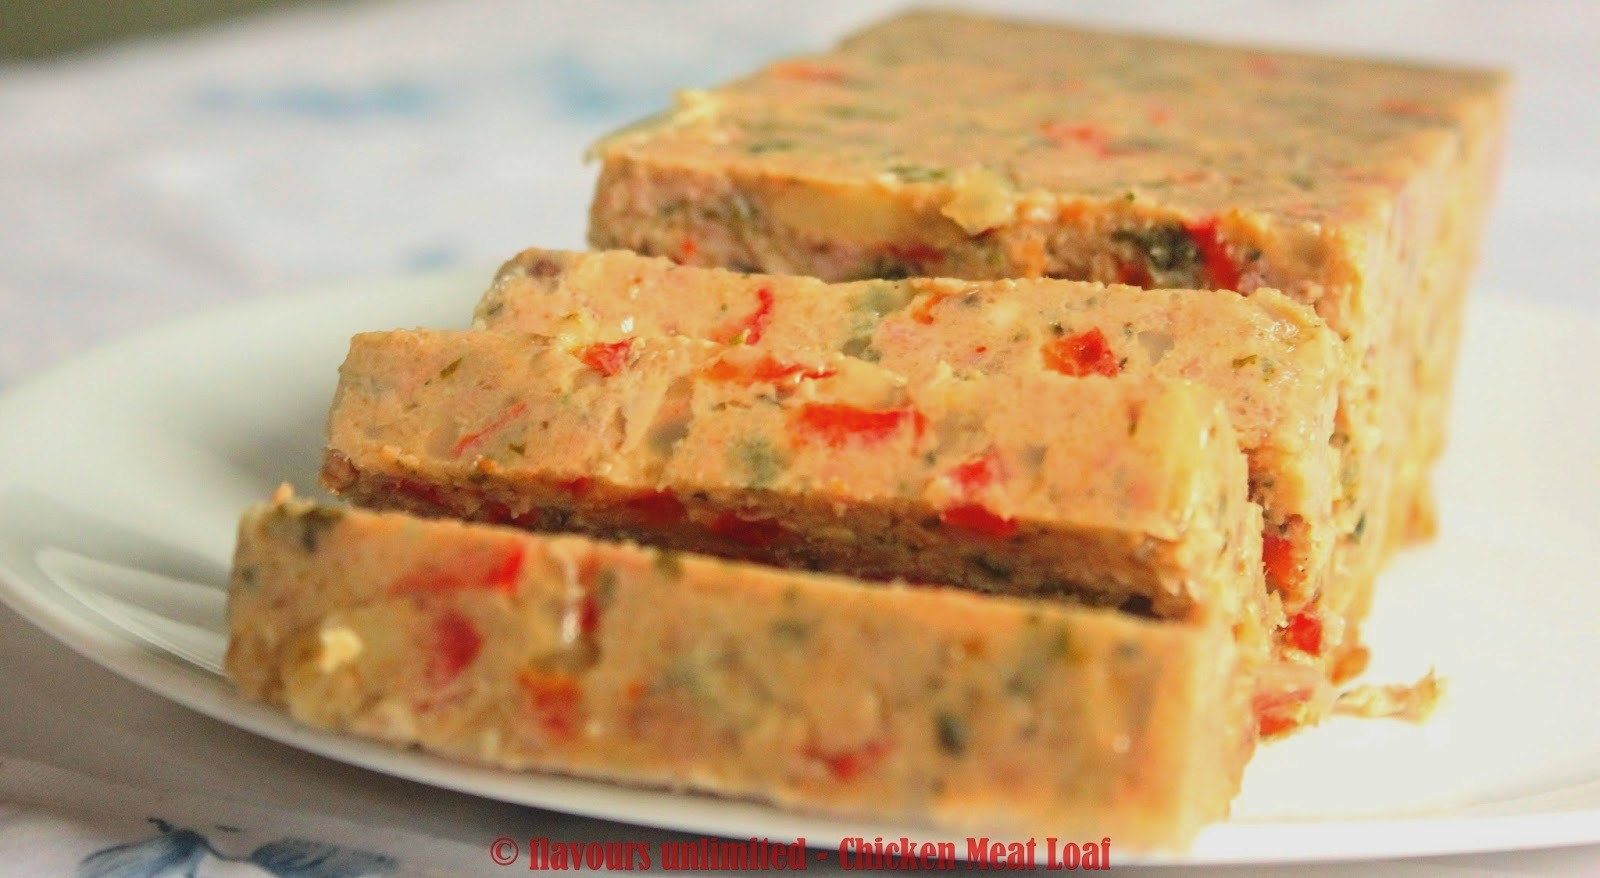 Zesty and Easy Chicken Meat Loaf